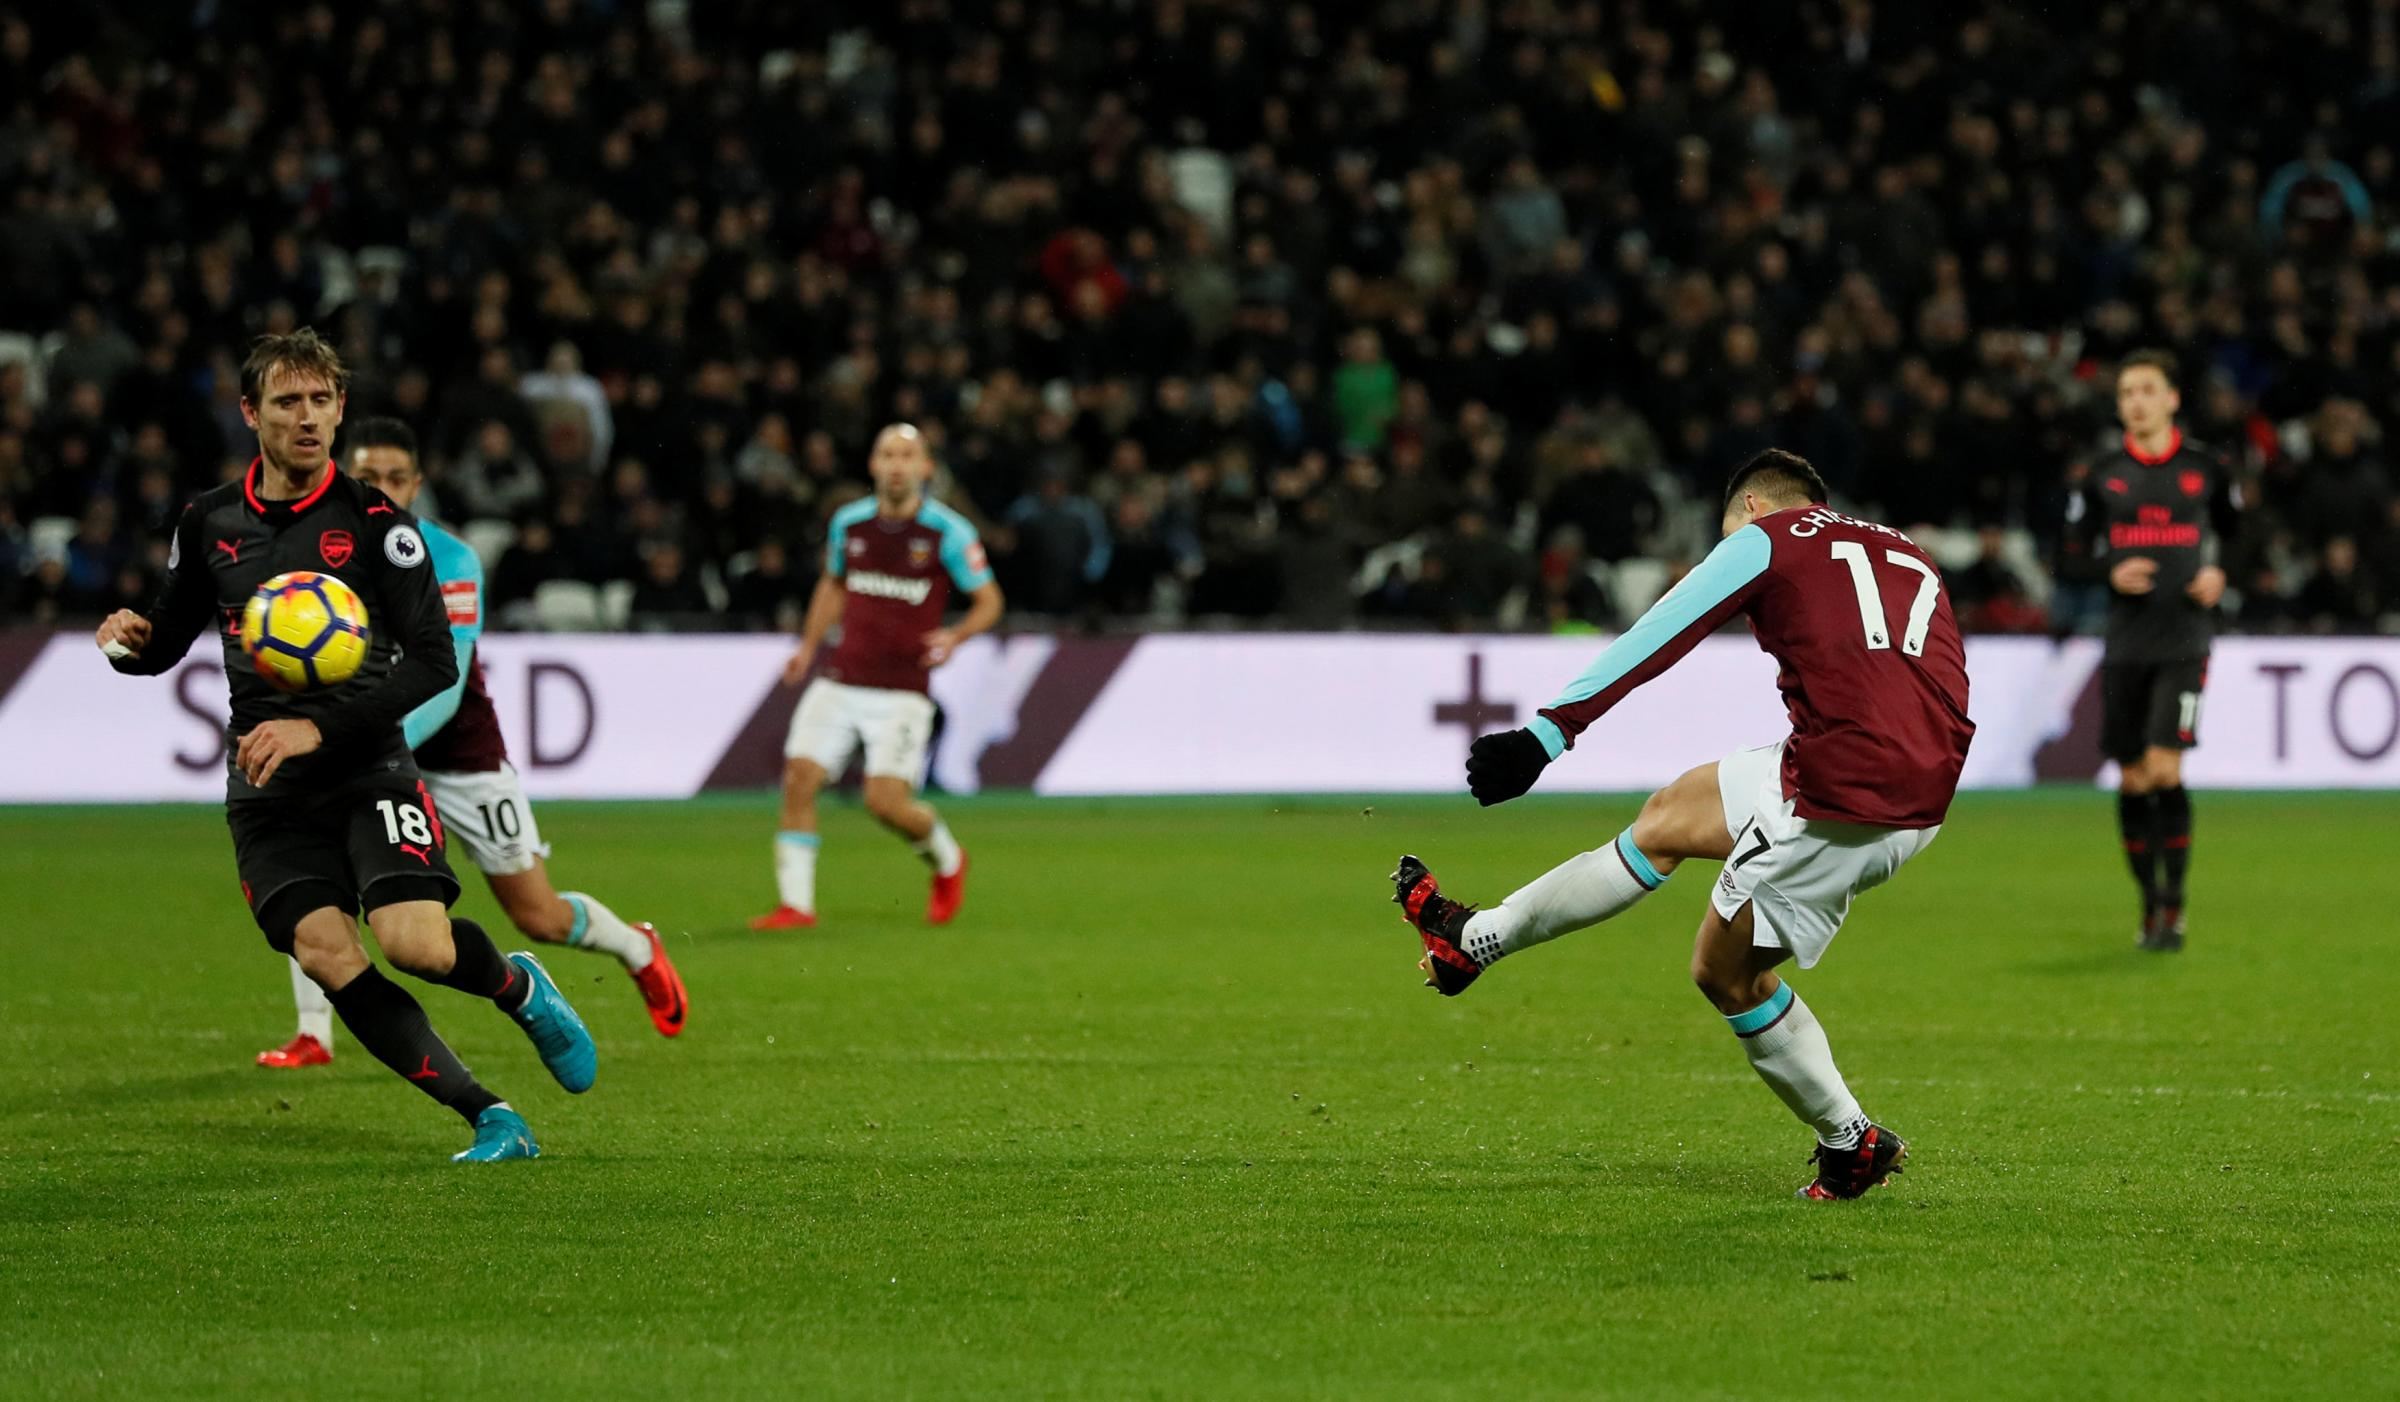 Javier Hernandez almost clinched a late win for West Ham when he hit the bar. Picture: Action Images